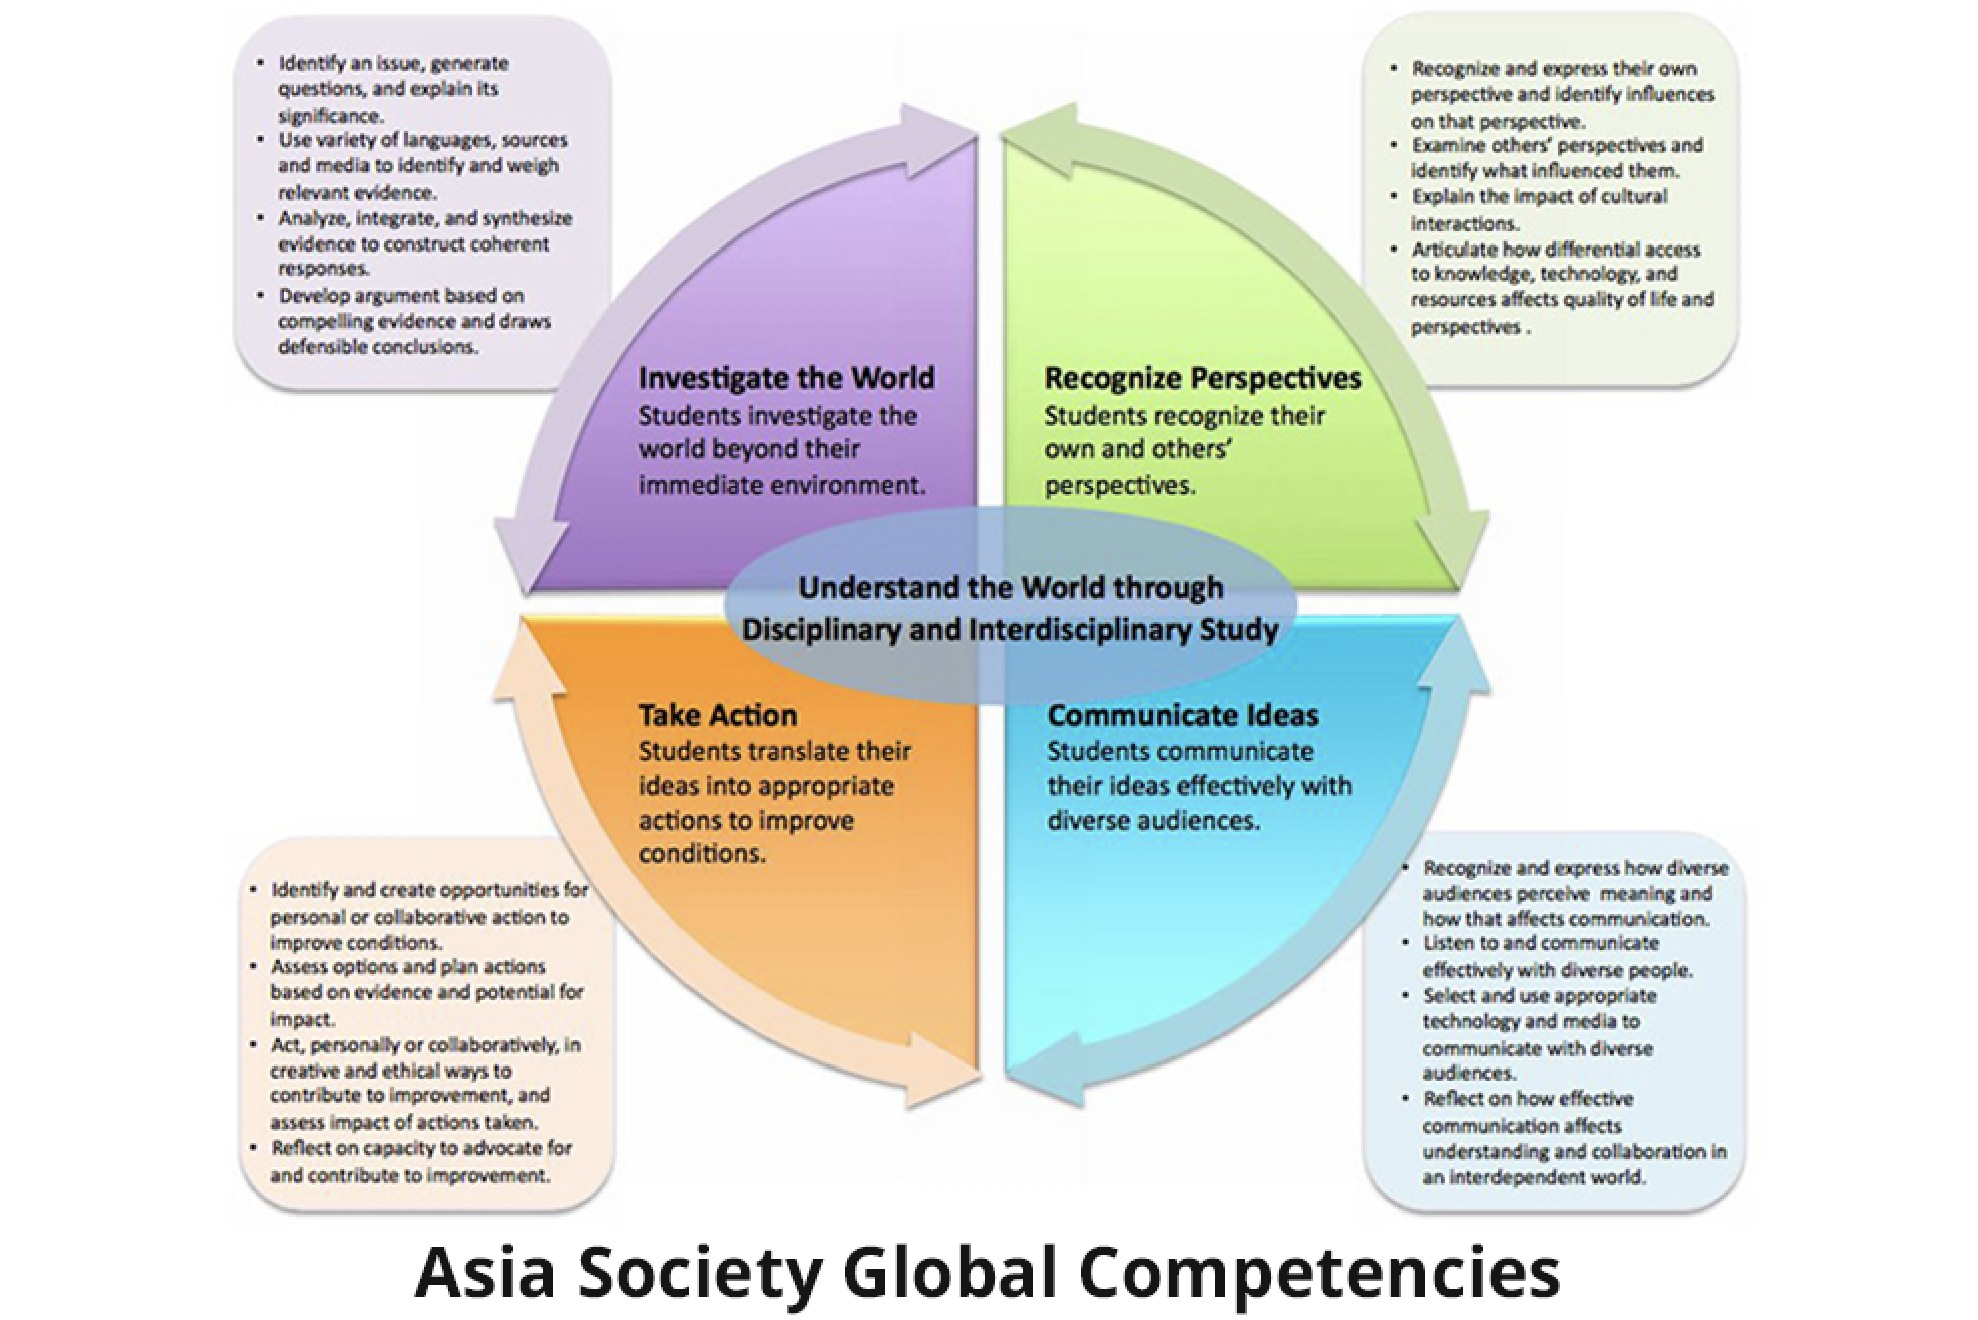 Asia Society Global Competencies